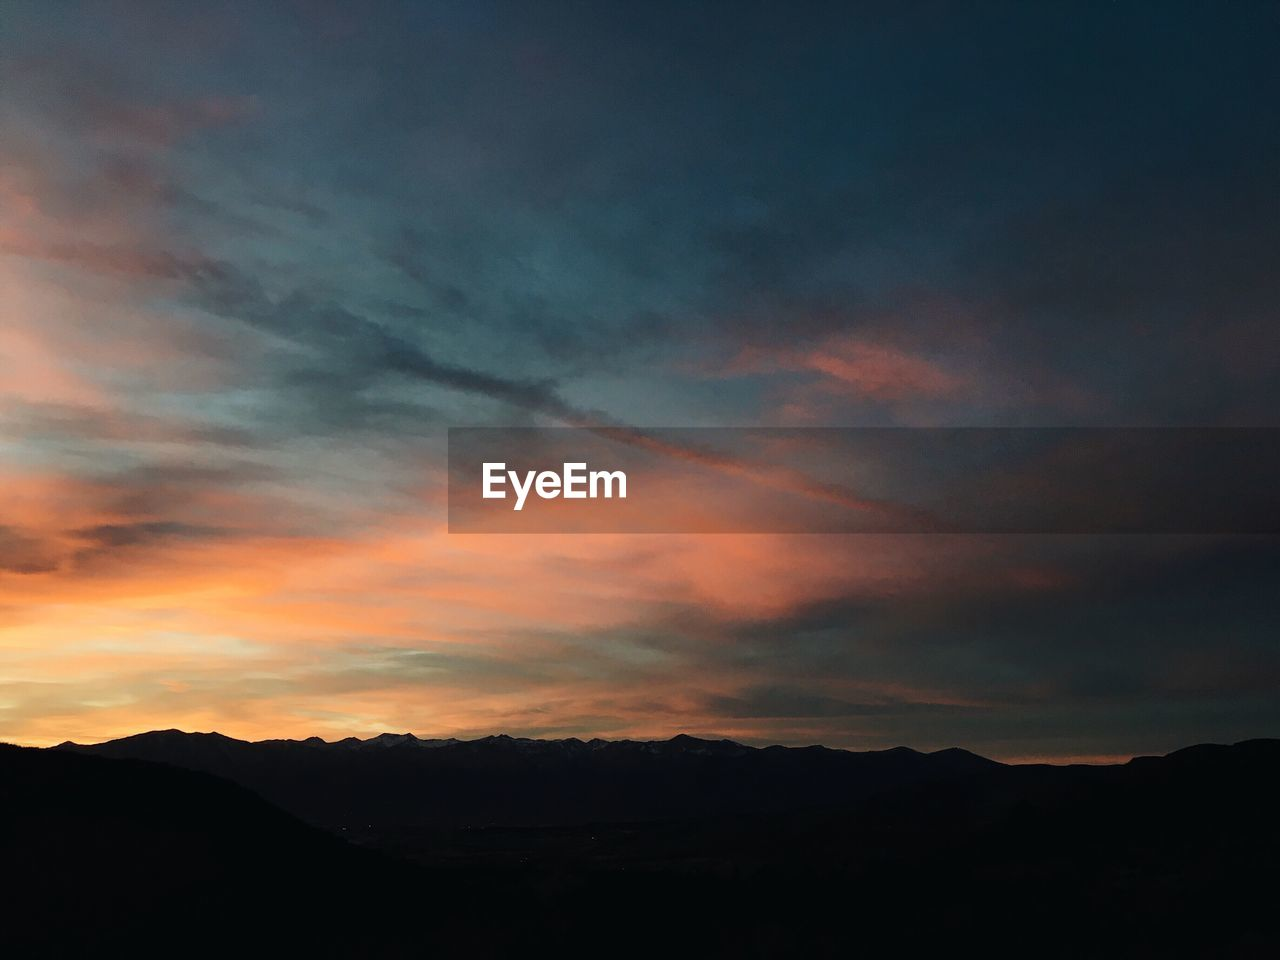 sky, cloud - sky, sunset, beauty in nature, tranquility, tranquil scene, scenics - nature, silhouette, mountain, nature, no people, environment, idyllic, non-urban scene, orange color, mountain range, dramatic sky, landscape, outdoors, low angle view, dark